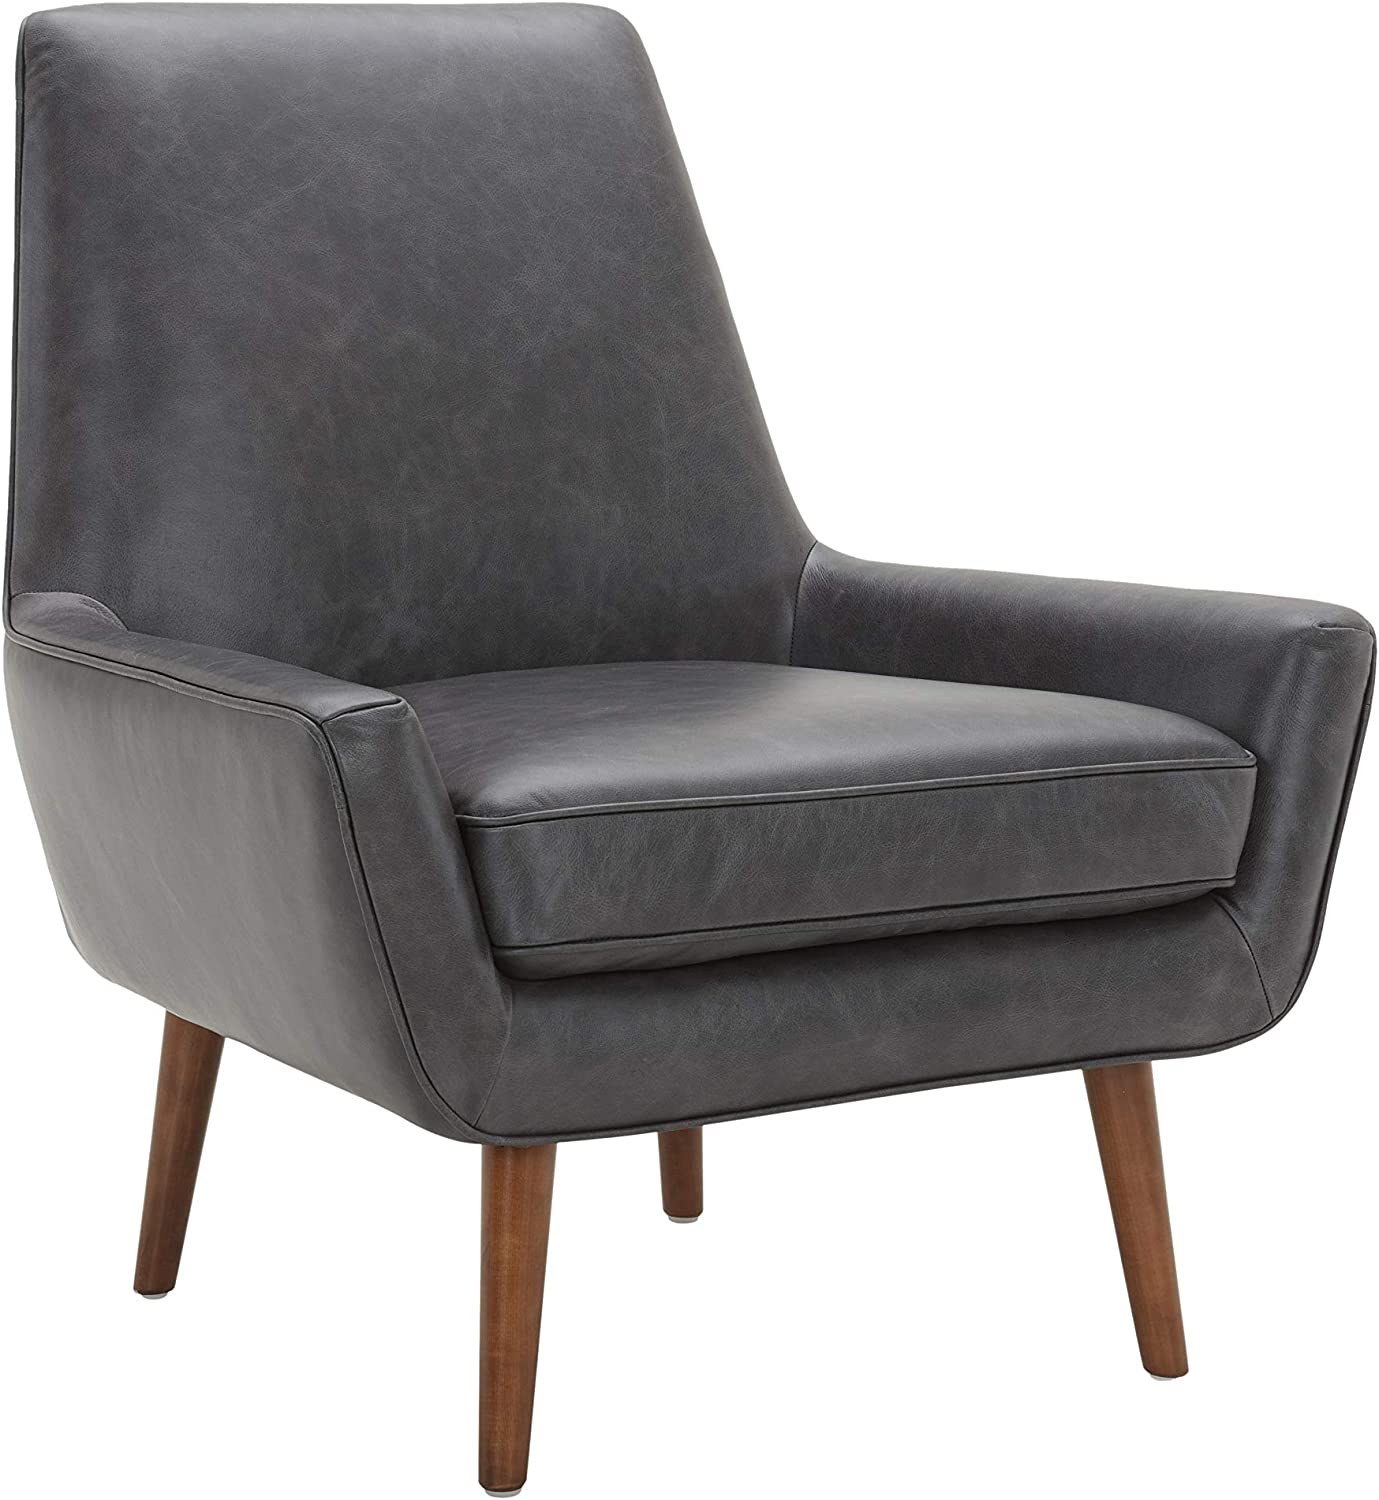 "Amazon Brand – Rivet Jamie Leather Mid-Century Modern Low Arm Accent Chair, 31""W, Black"